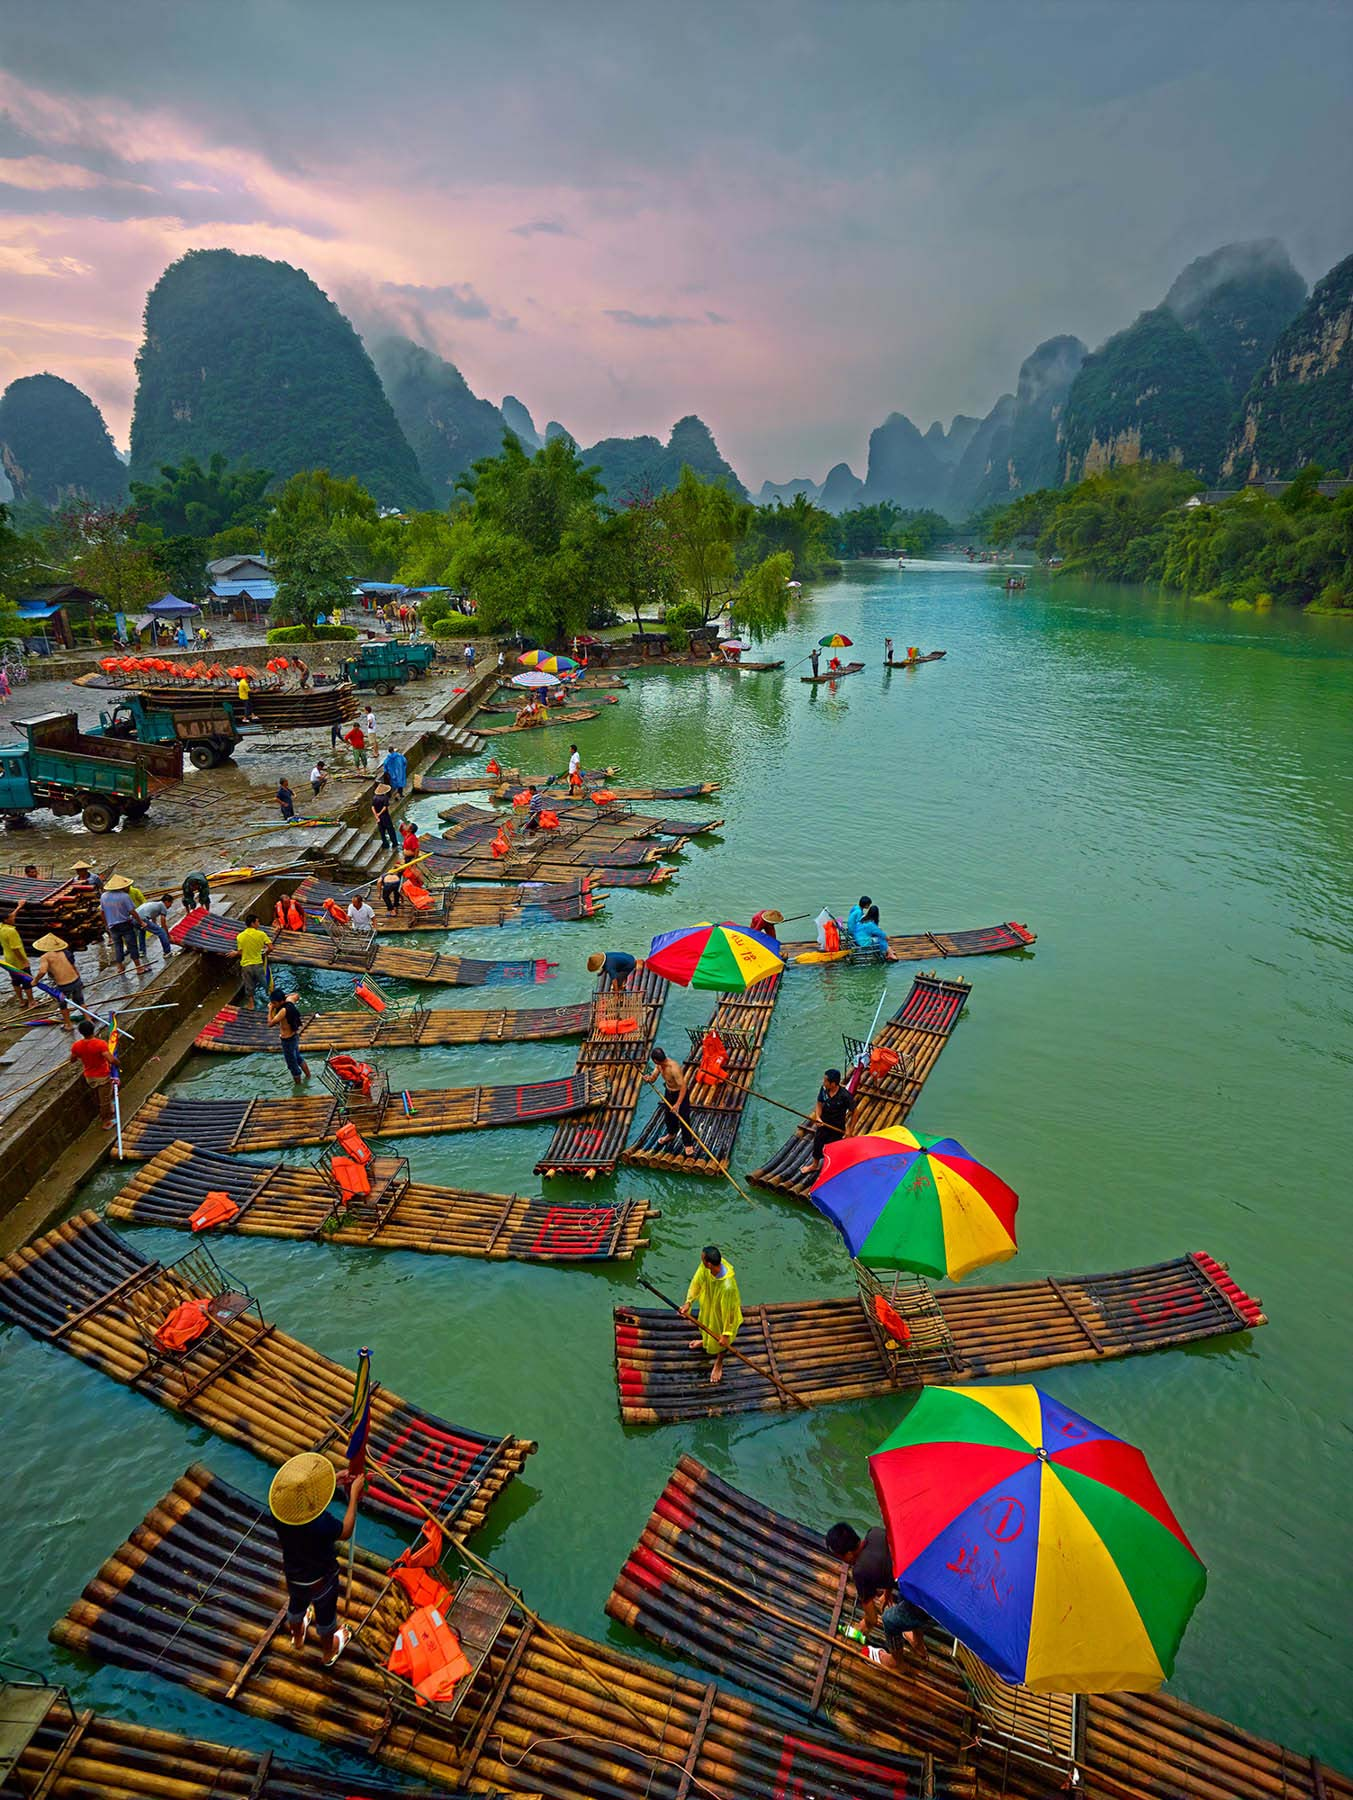 People loading boats on Jade Dragon River, Guilin, China.